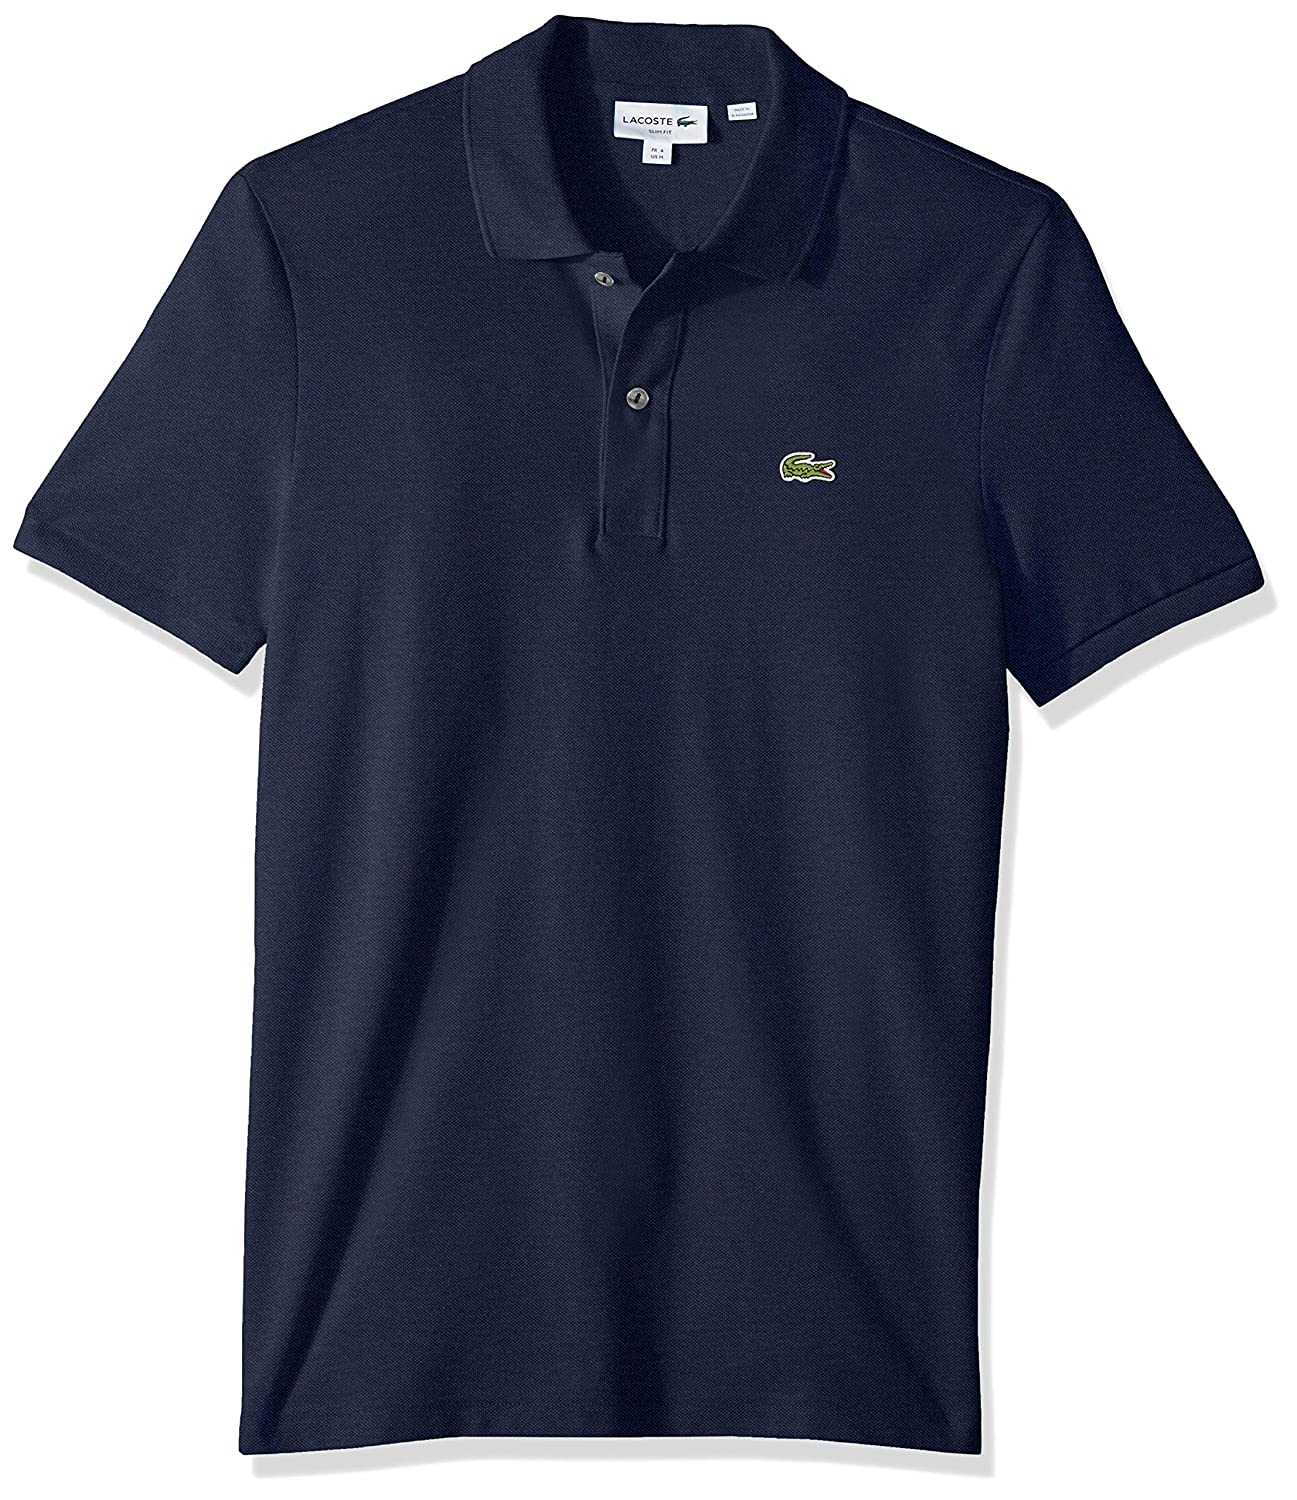 5b7a82a49 Lacoste Men's Petit Piqué Slim Fit Polo Shirt at Amazon Men's Clothing  store: